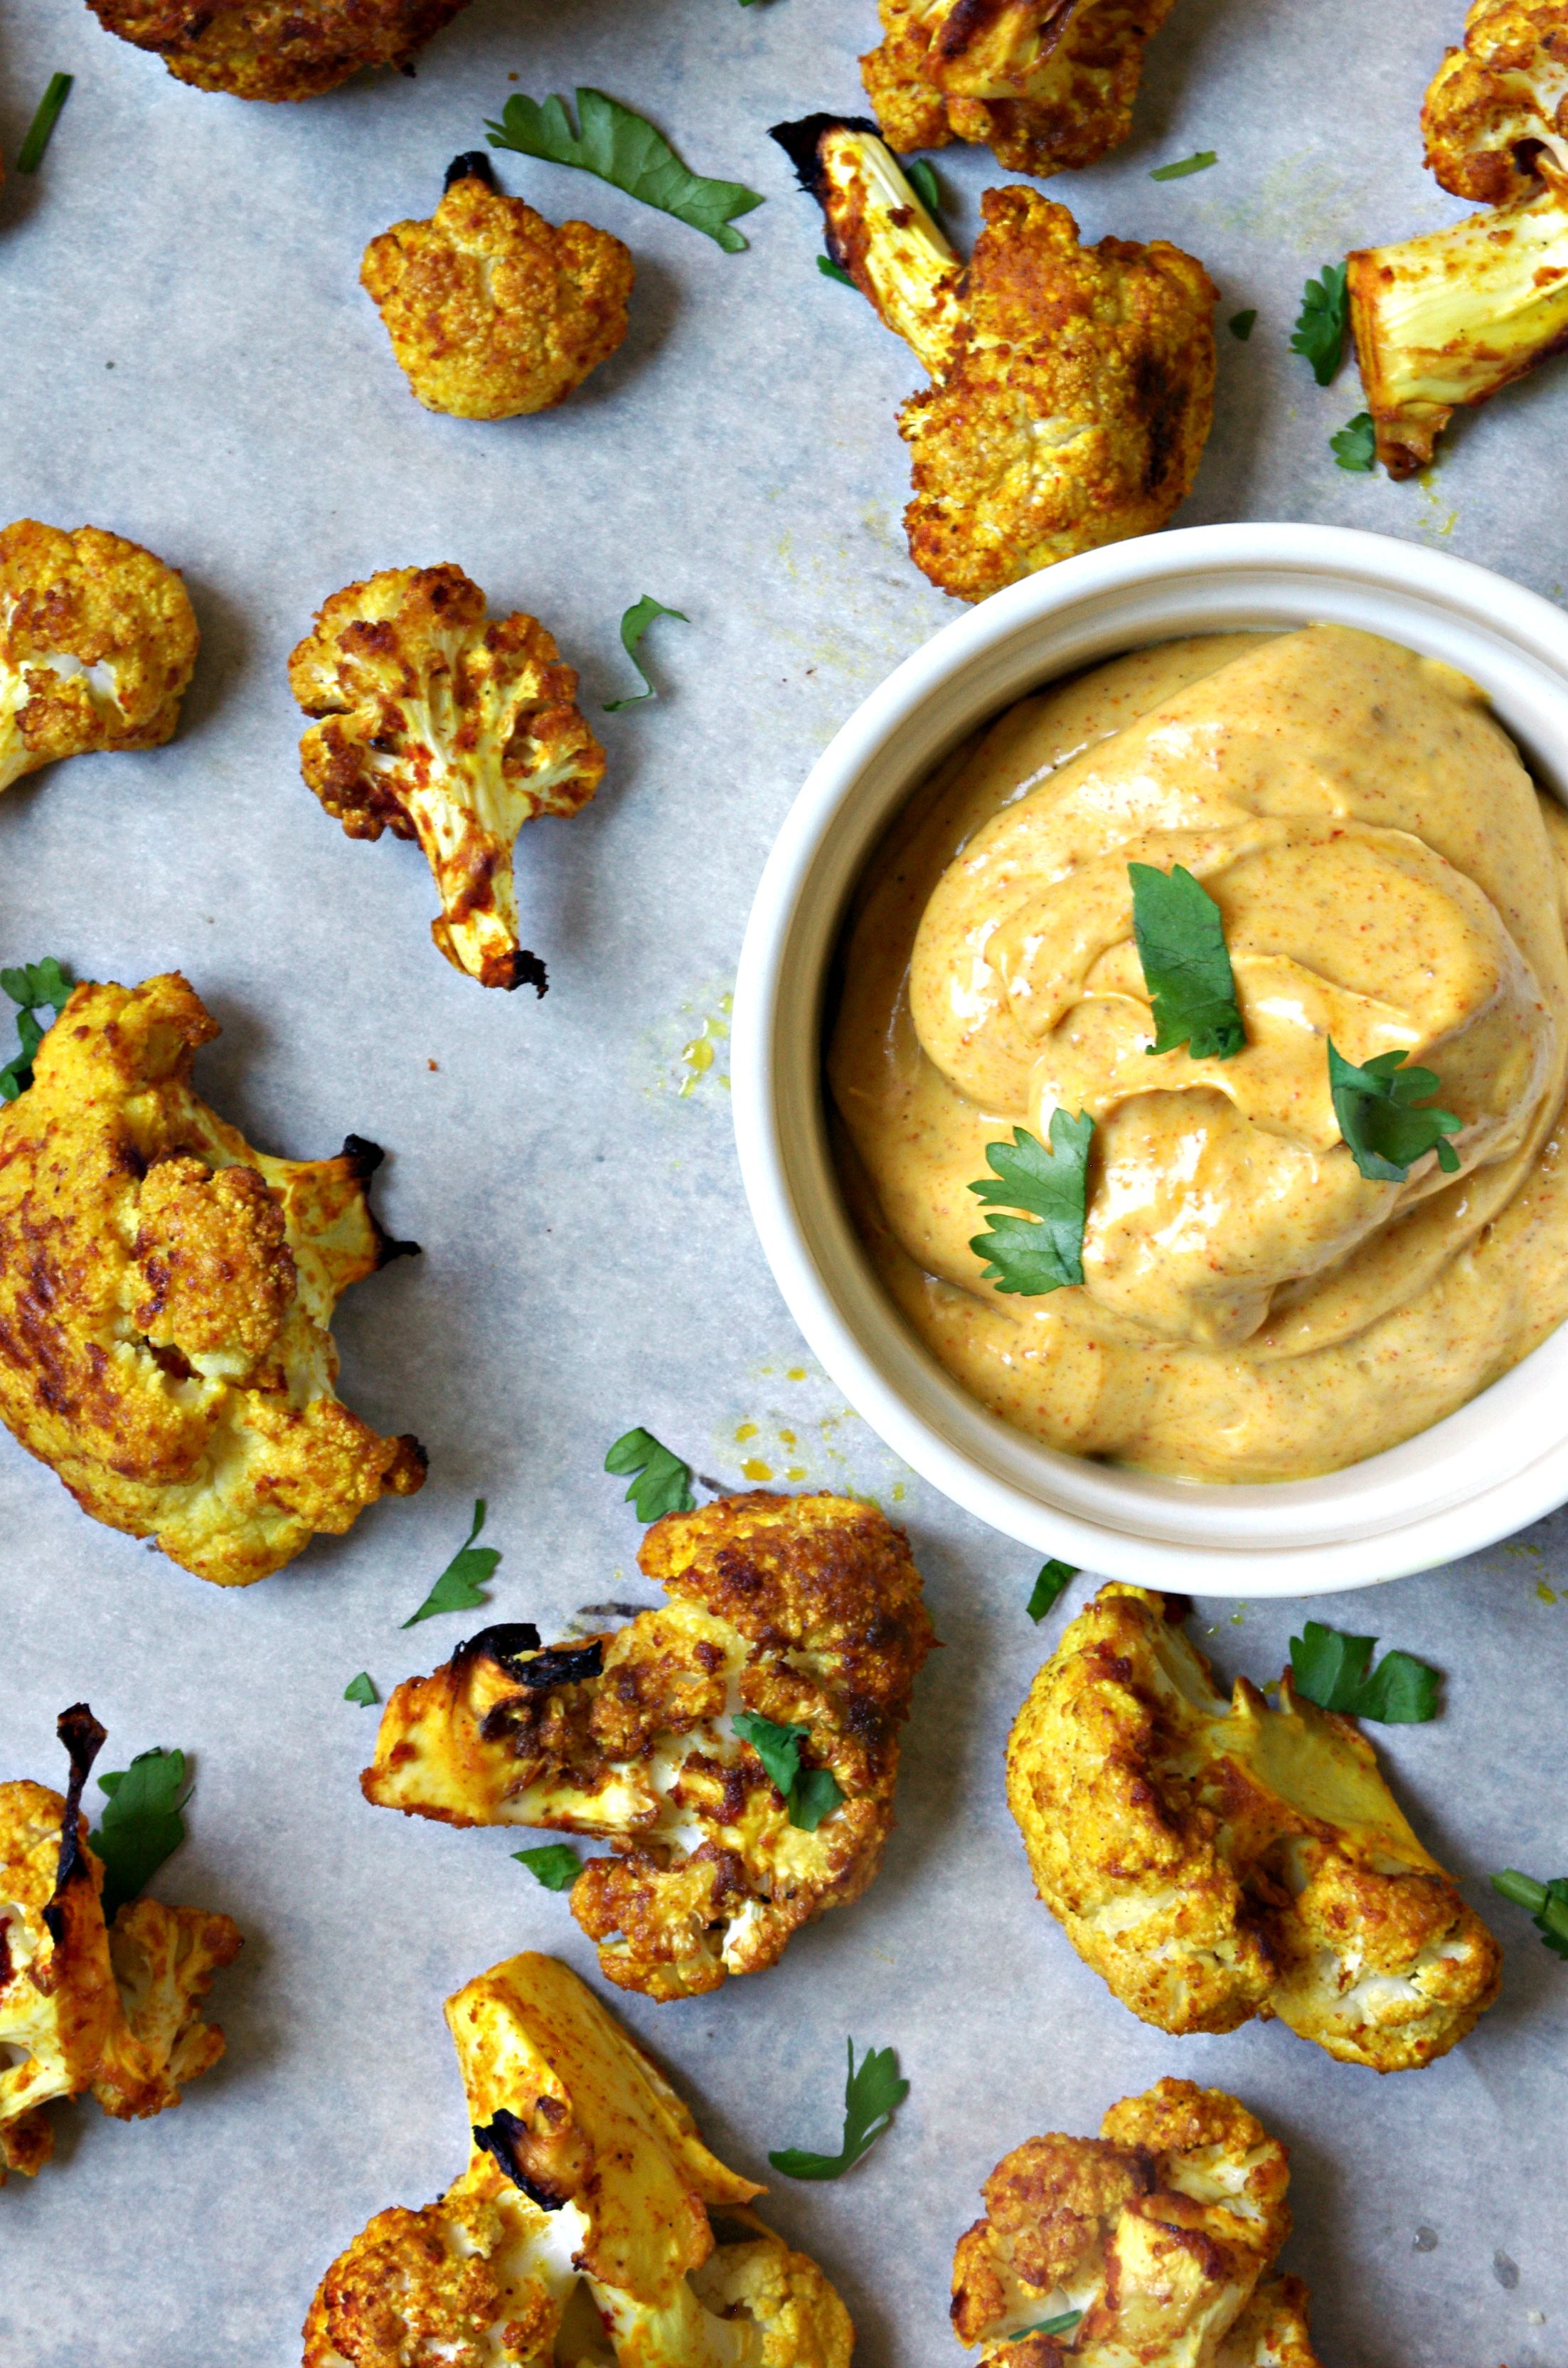 Curried Oven Roasted Cauliflower With Curry Mayo Recipe Oven Roasted Cauliflower Recipes Curry